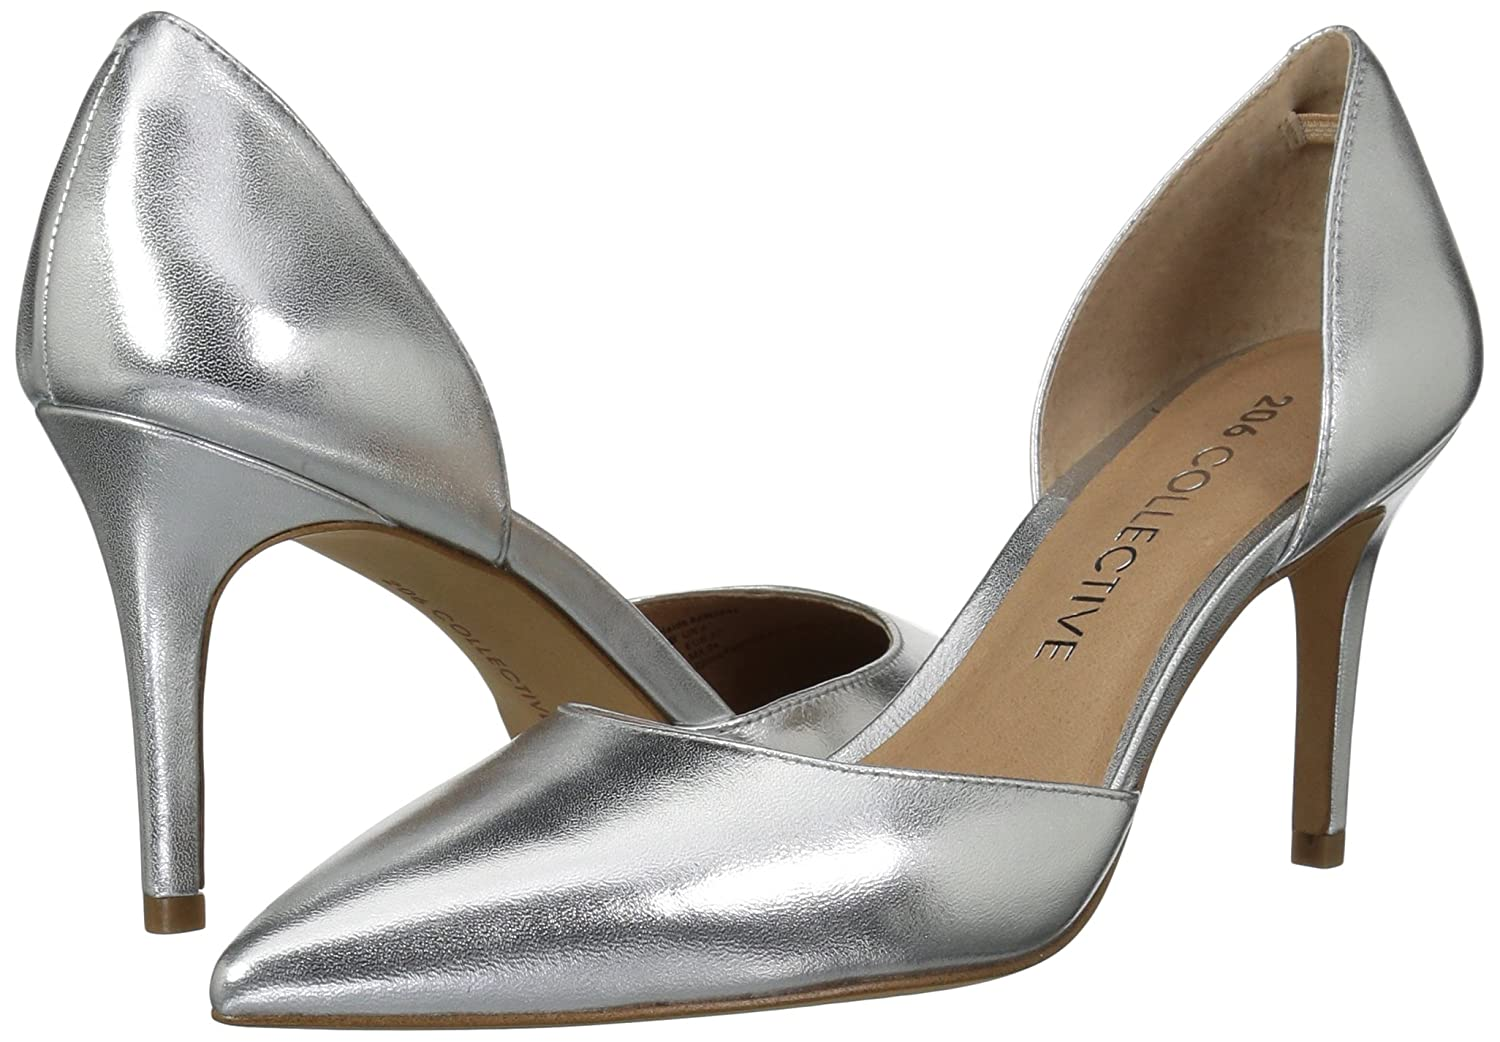 206 Collective Women's Adelaide D'Orsay Dress Pump B0789BZCGQ 11 B(M) US|Silver Leather